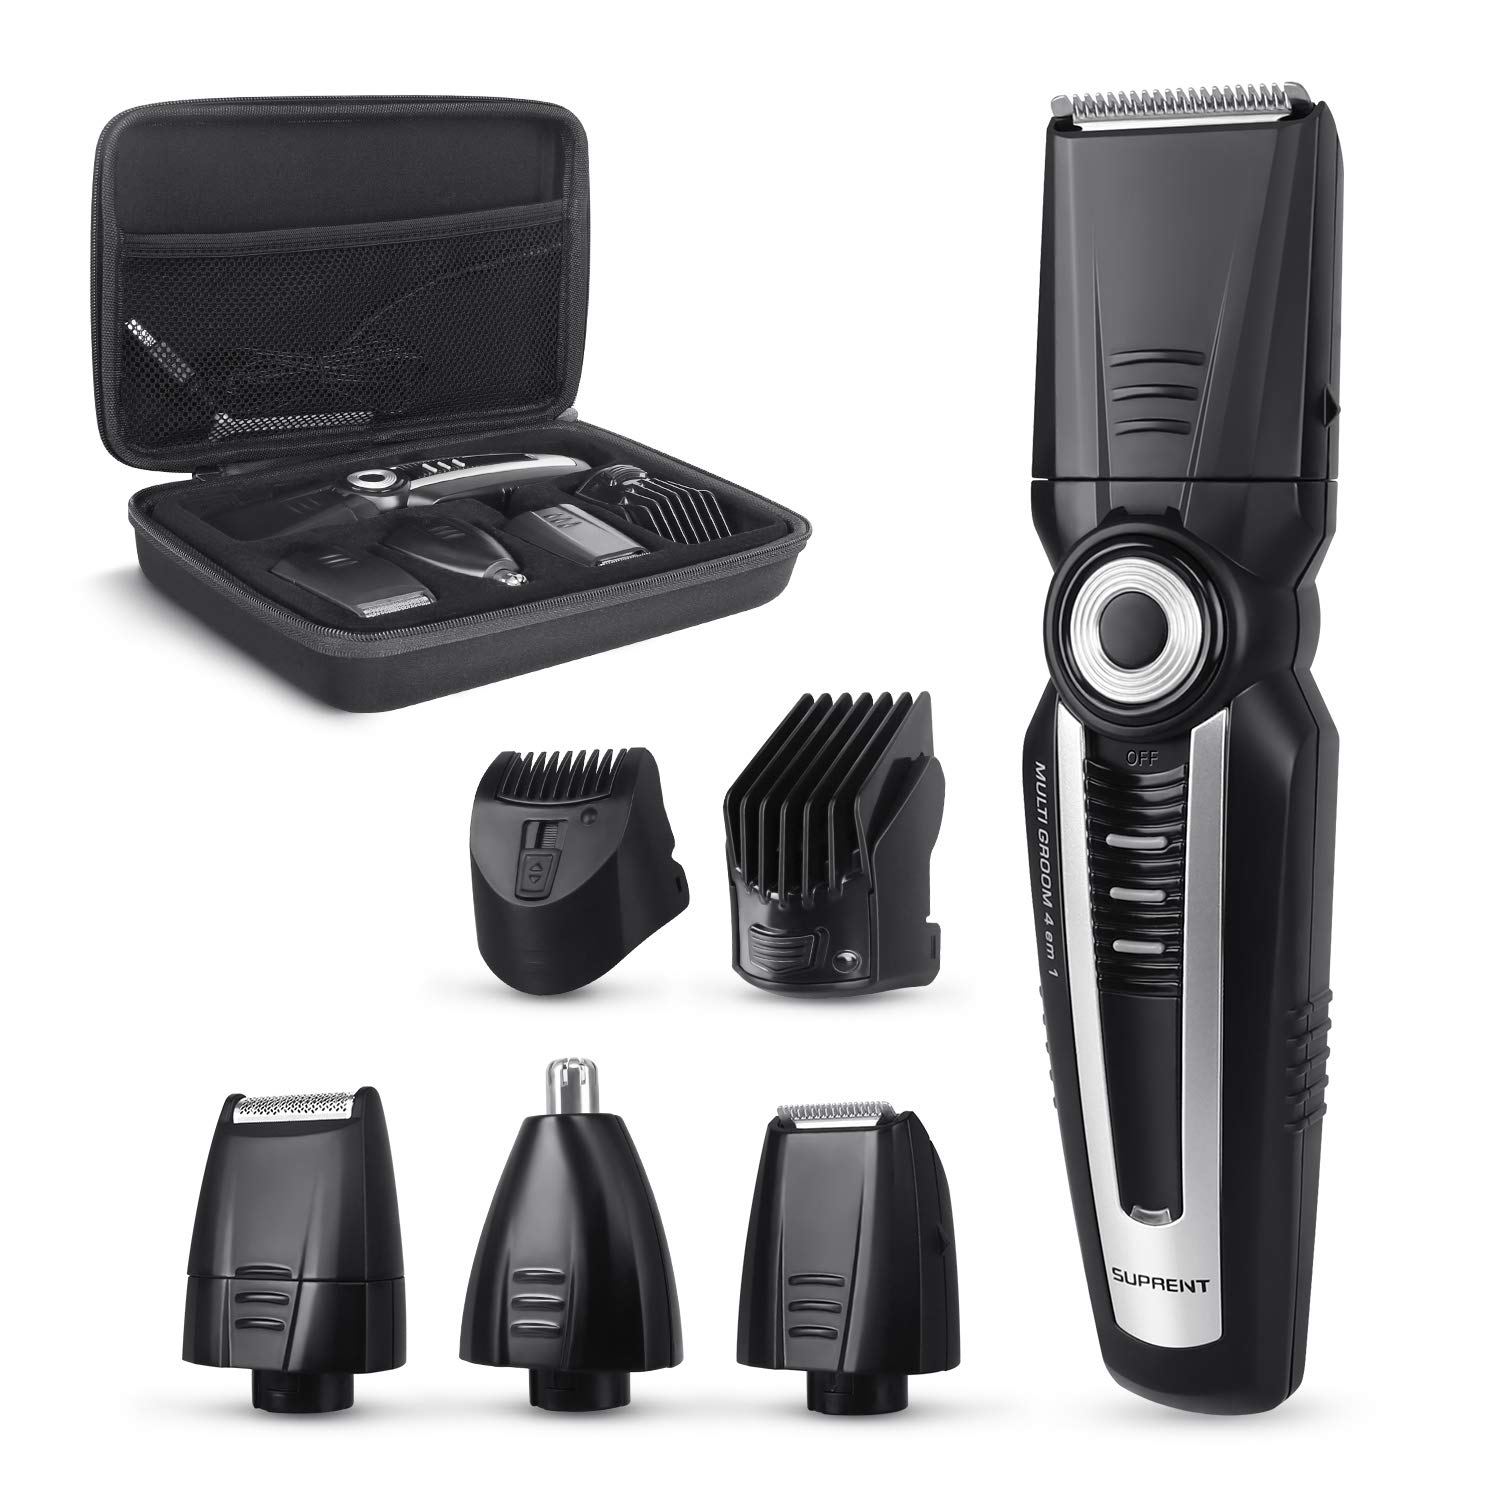 SUPRENT Beard Trimmer Kit, 5 in 1 Multi-functional Body Groomer Kit of Mustache Trimmer, Nose Hair Trimmer and Precision Trimmer, Waterproof and Rechargeable Cordless BT235B-15